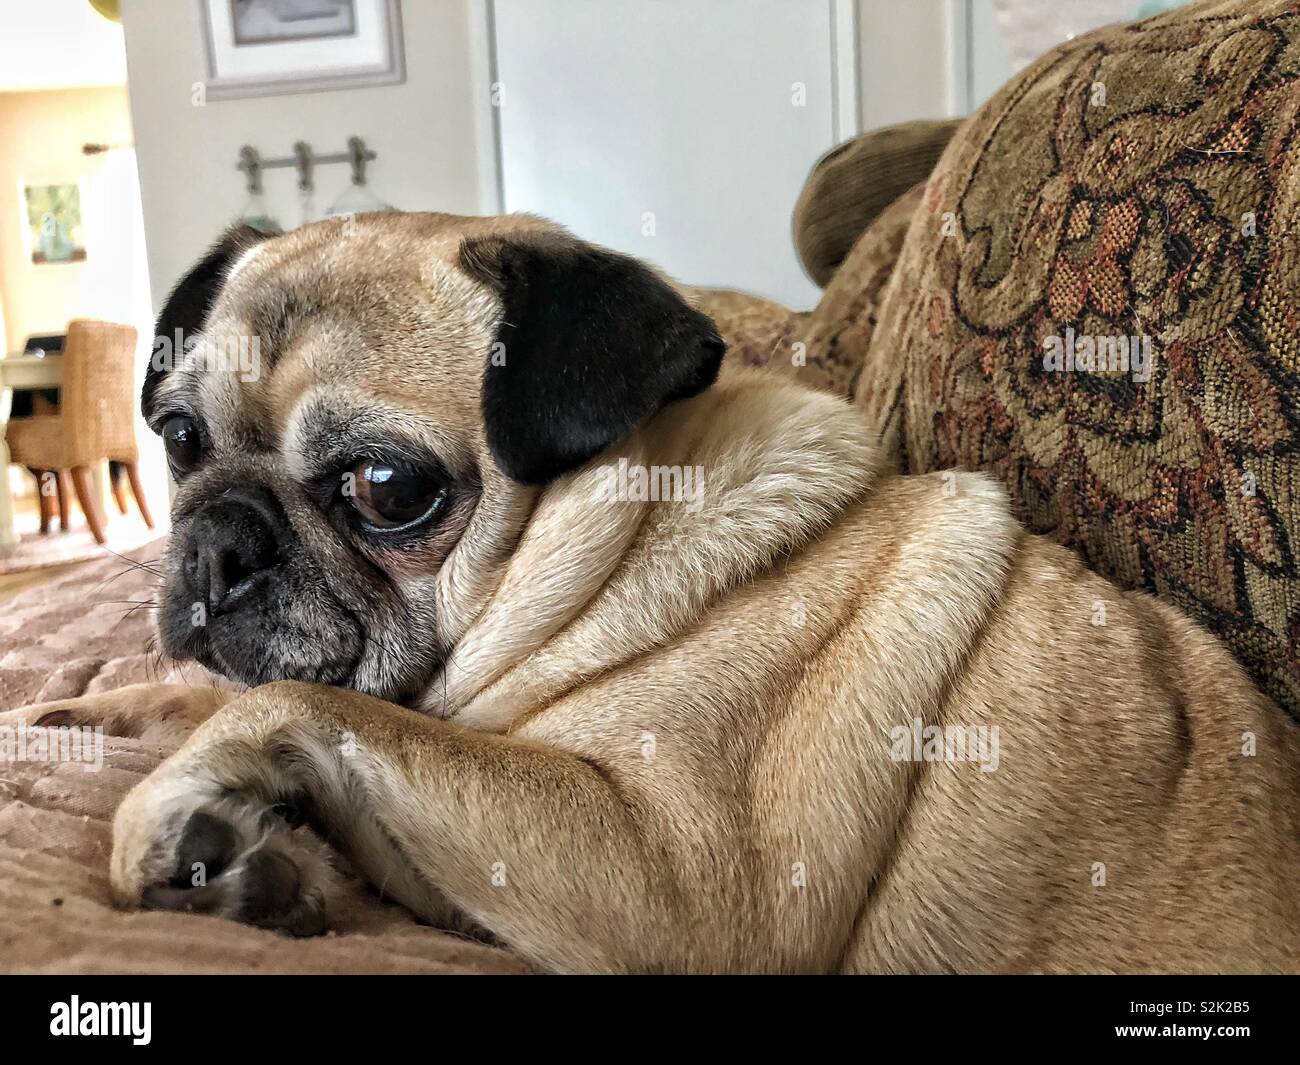 Cute little fawn pug giving the look with her big brown eyes - Stock Image